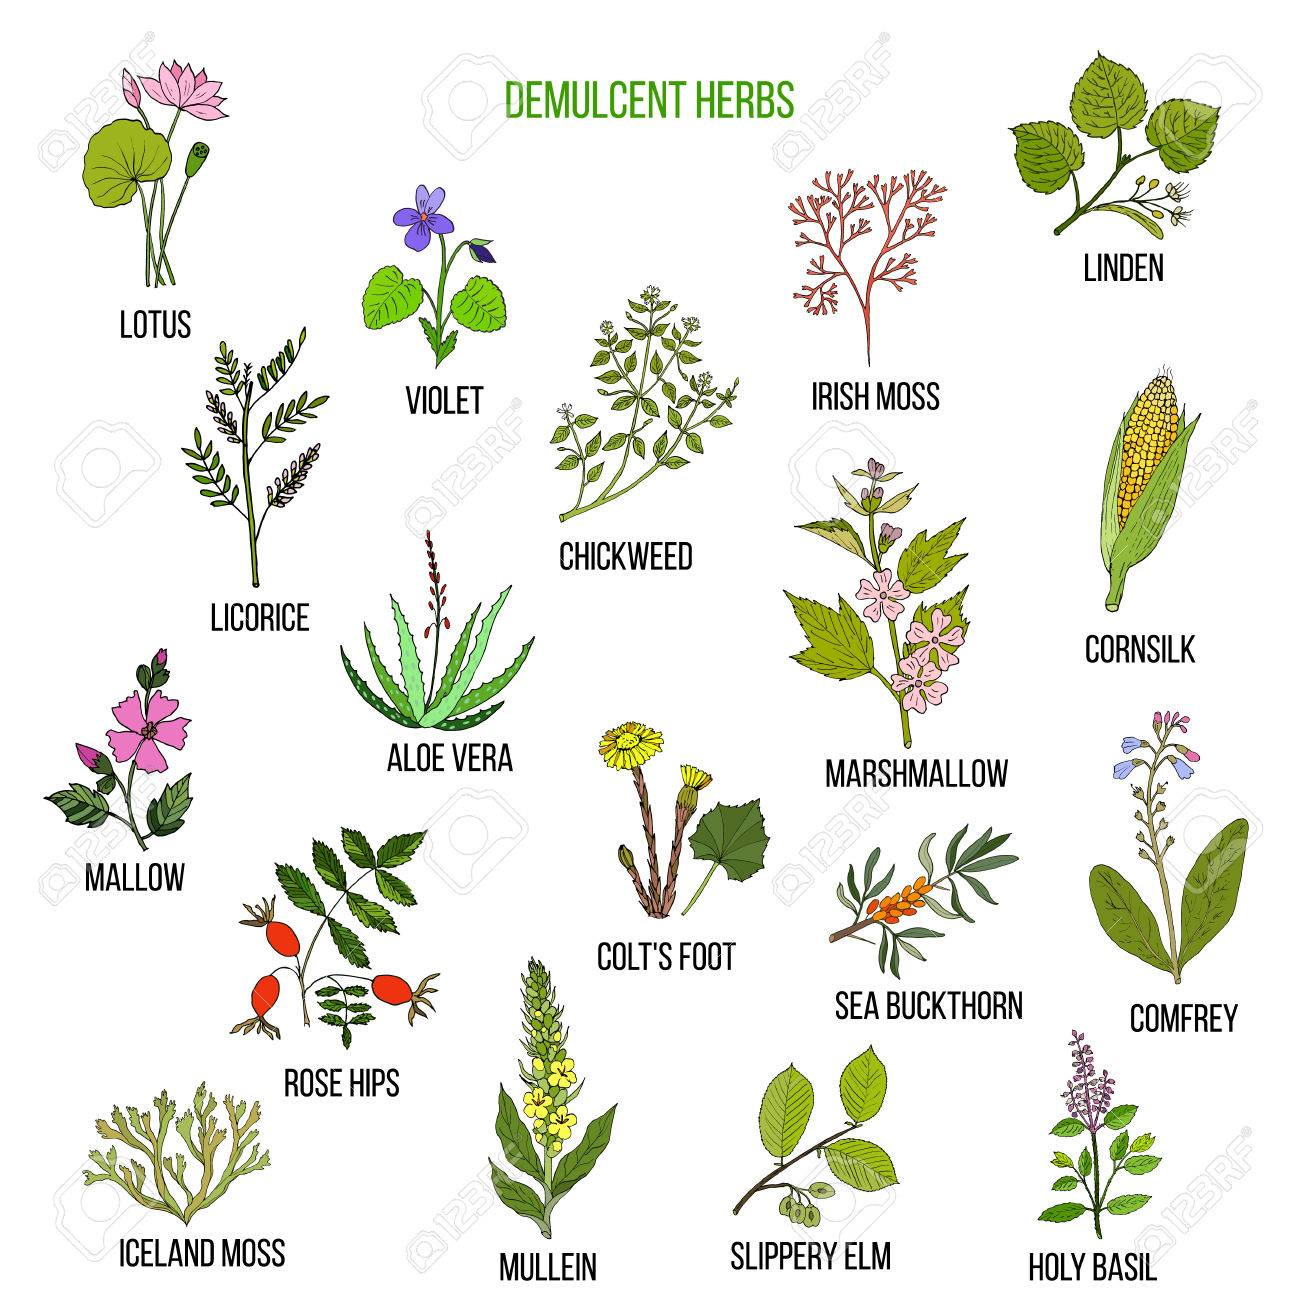 Demulcent herbs  Hand drawn vector set of medicinal plants